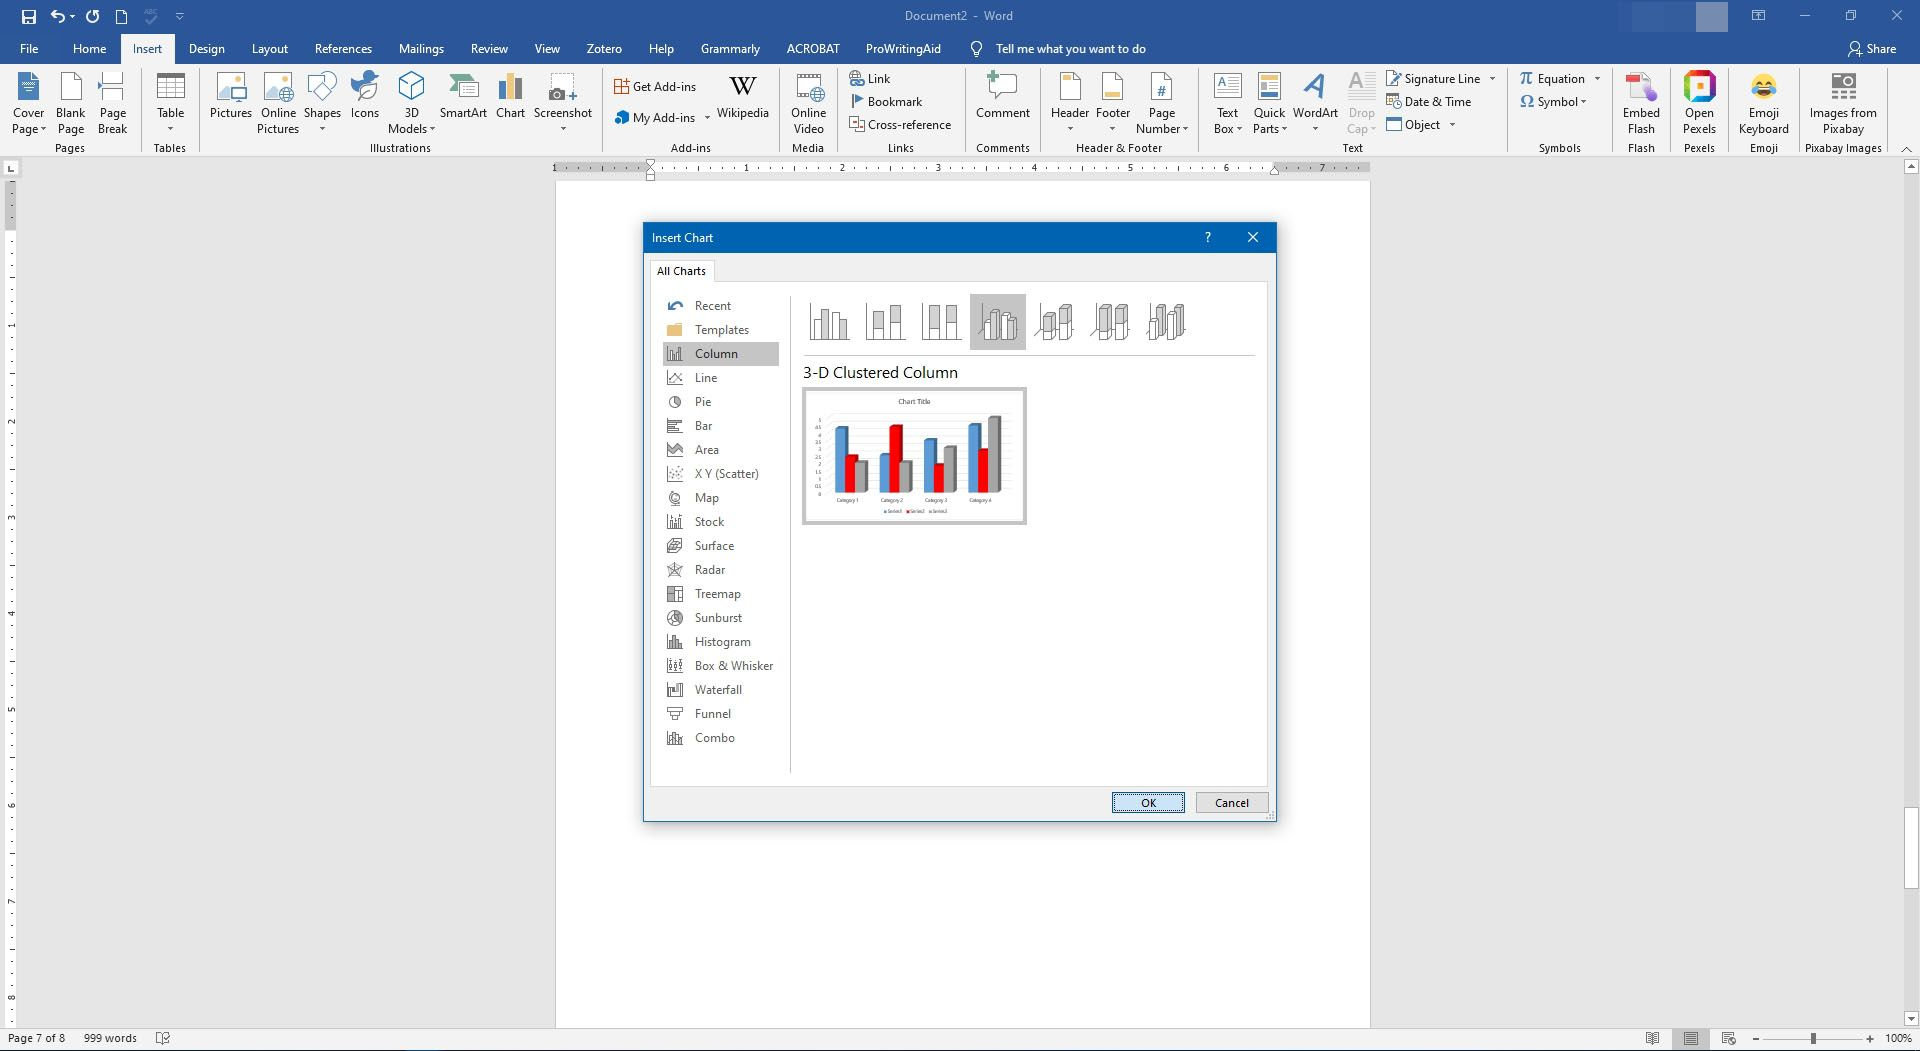 Changing options for a chart in Microsoft Word.